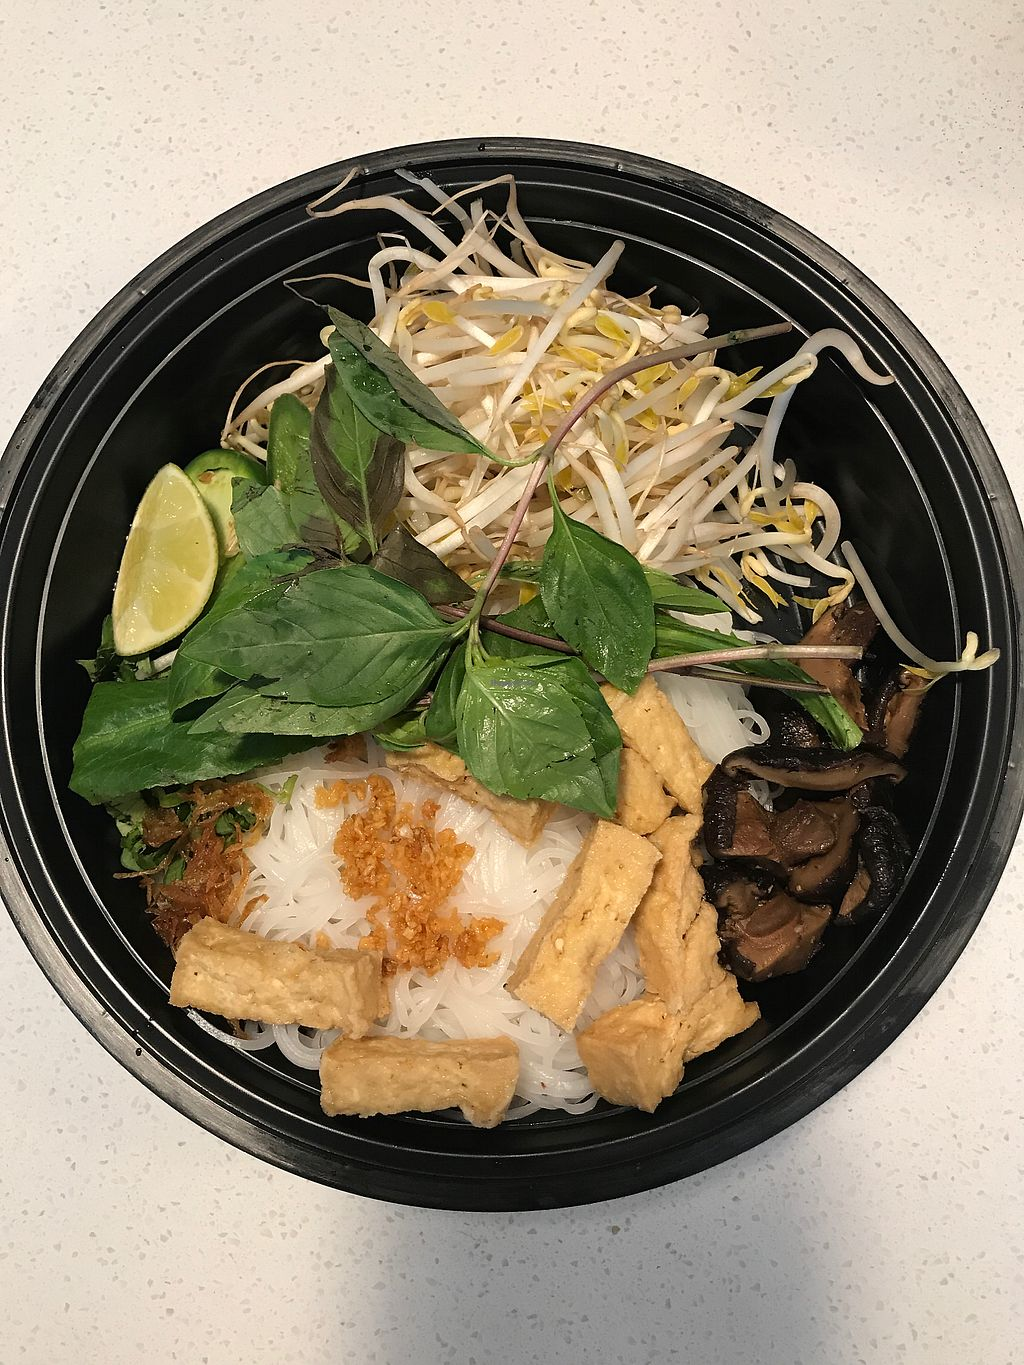 """Photo of Pho King - Midtown  by <a href=""""/members/profile/melissapedroso"""">melissapedroso</a> <br/>vegitarian noodle soup <br/> July 5, 2017  - <a href='/contact/abuse/image/92523/276940'>Report</a>"""